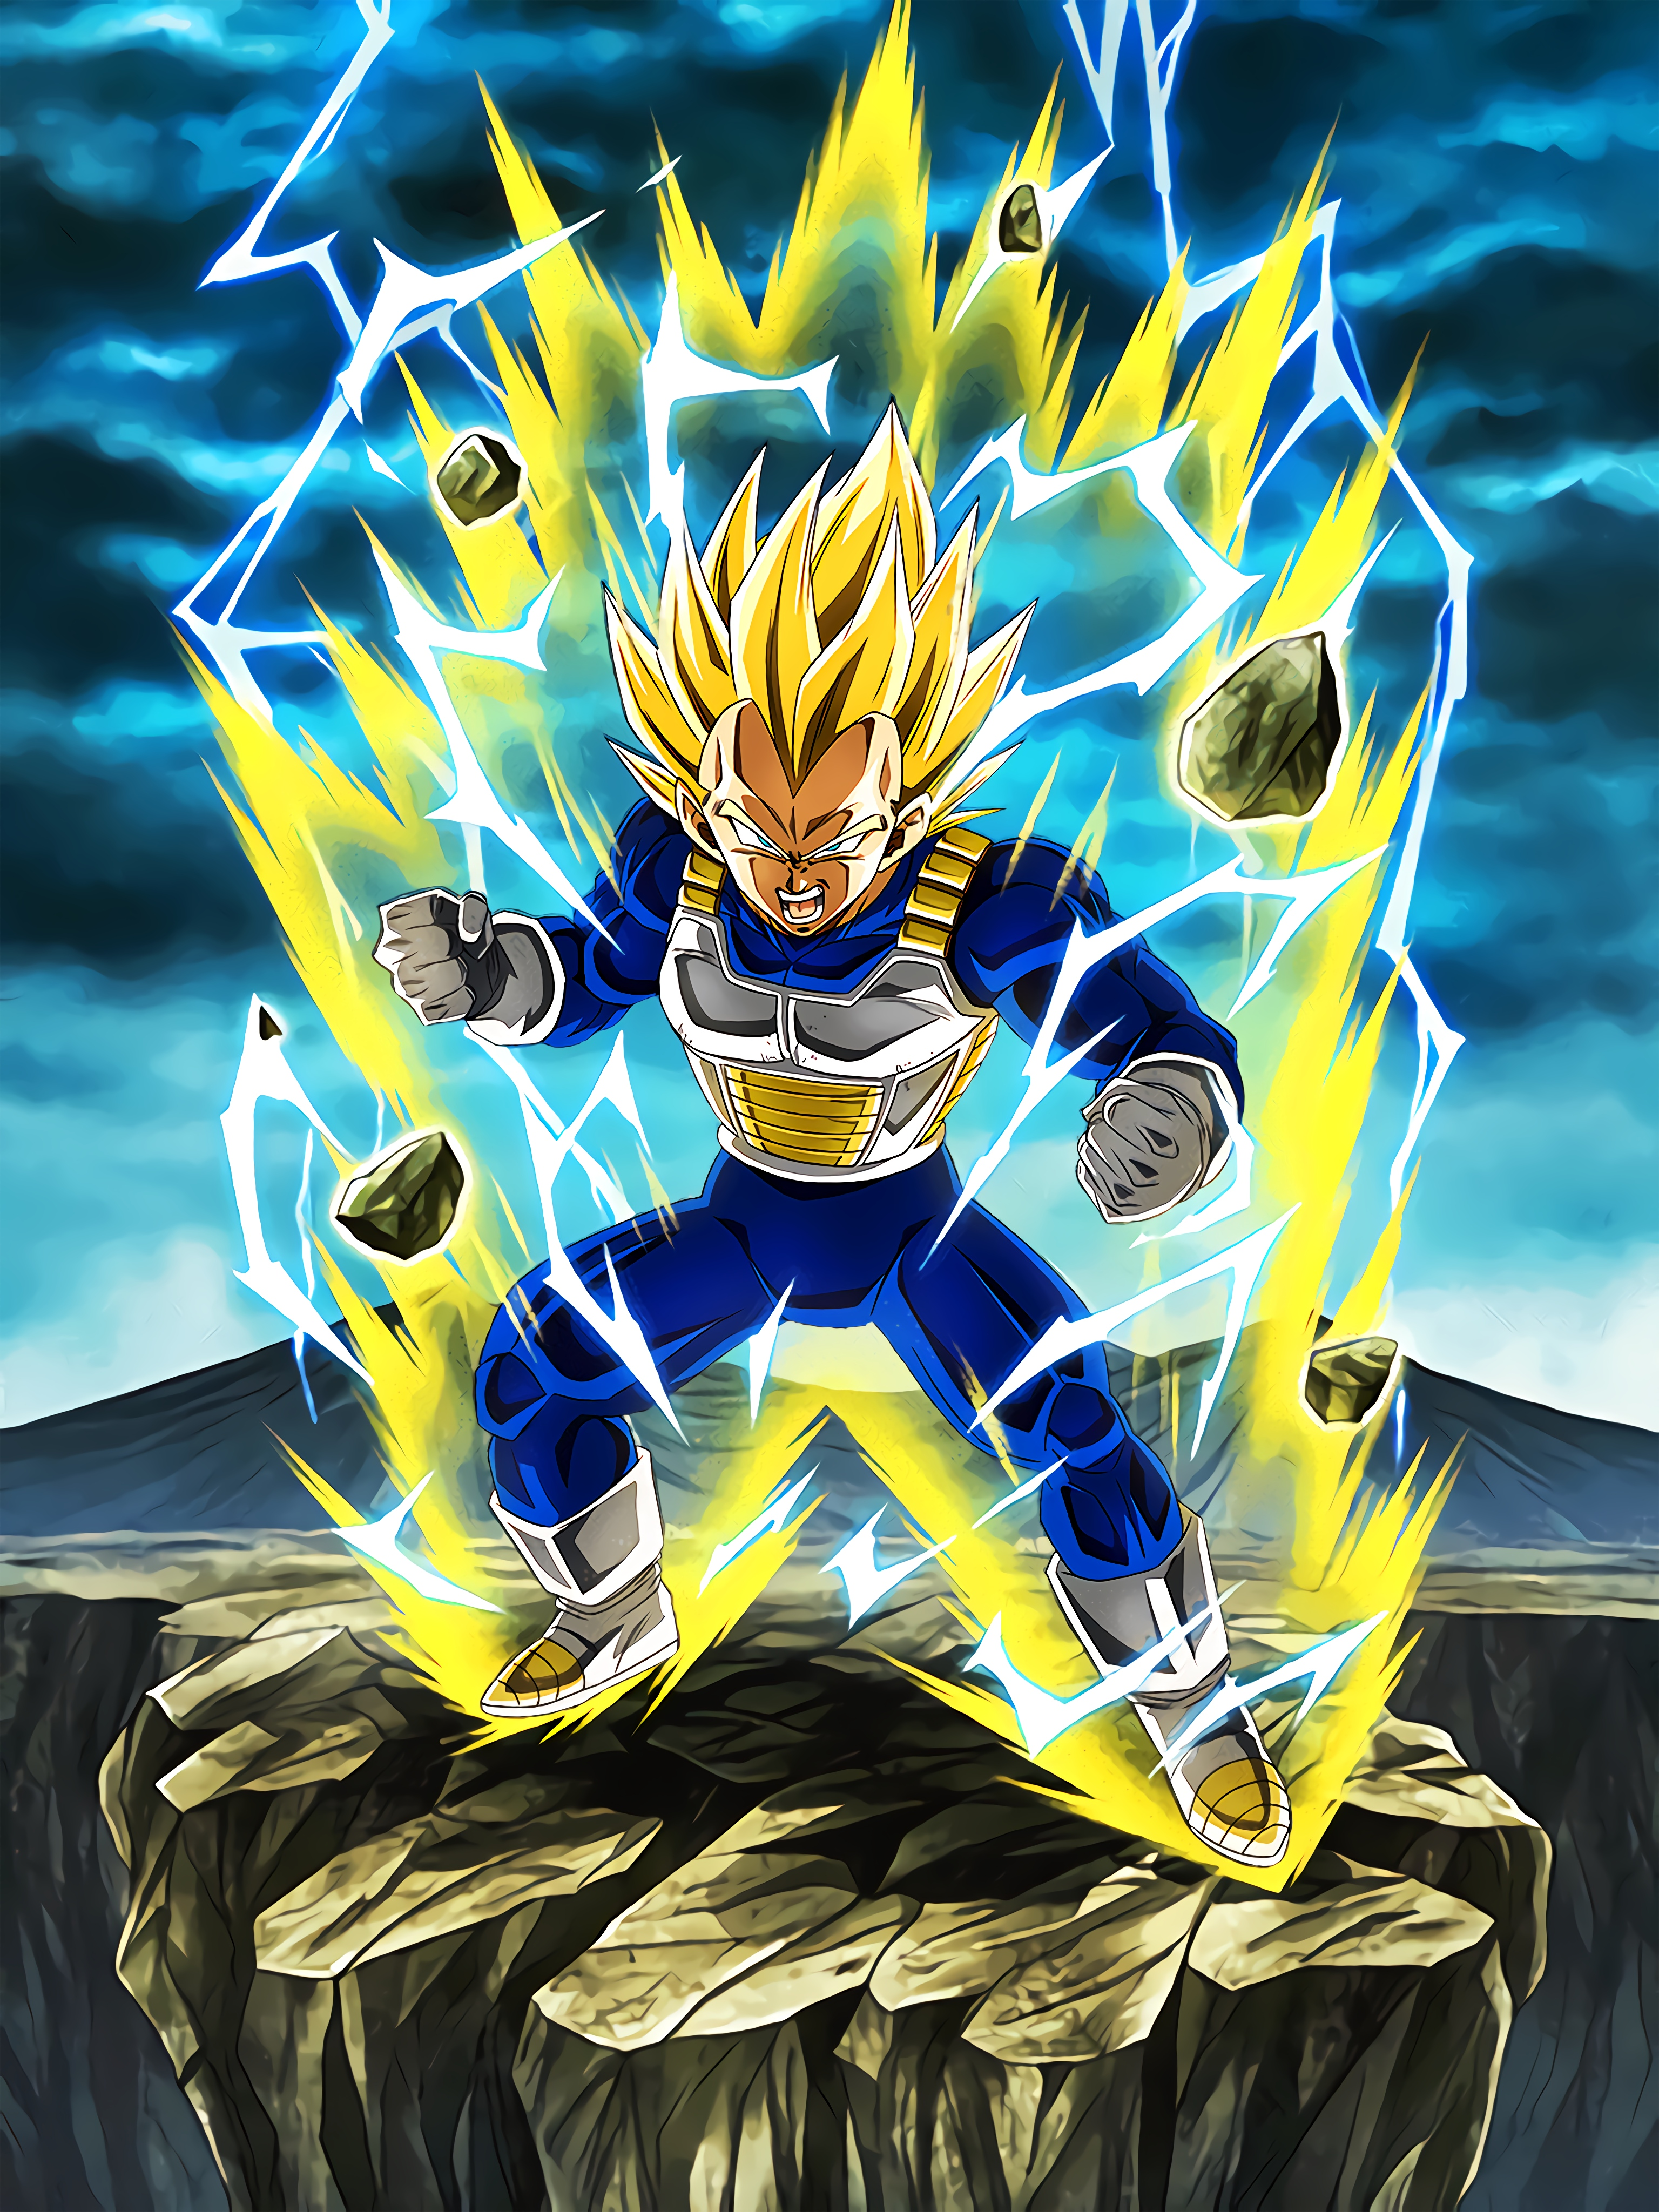 Limitless Combat Power Super Saiyan 2 Vegeta Art (Dragon Ball Z Dokkan Battle).jpg